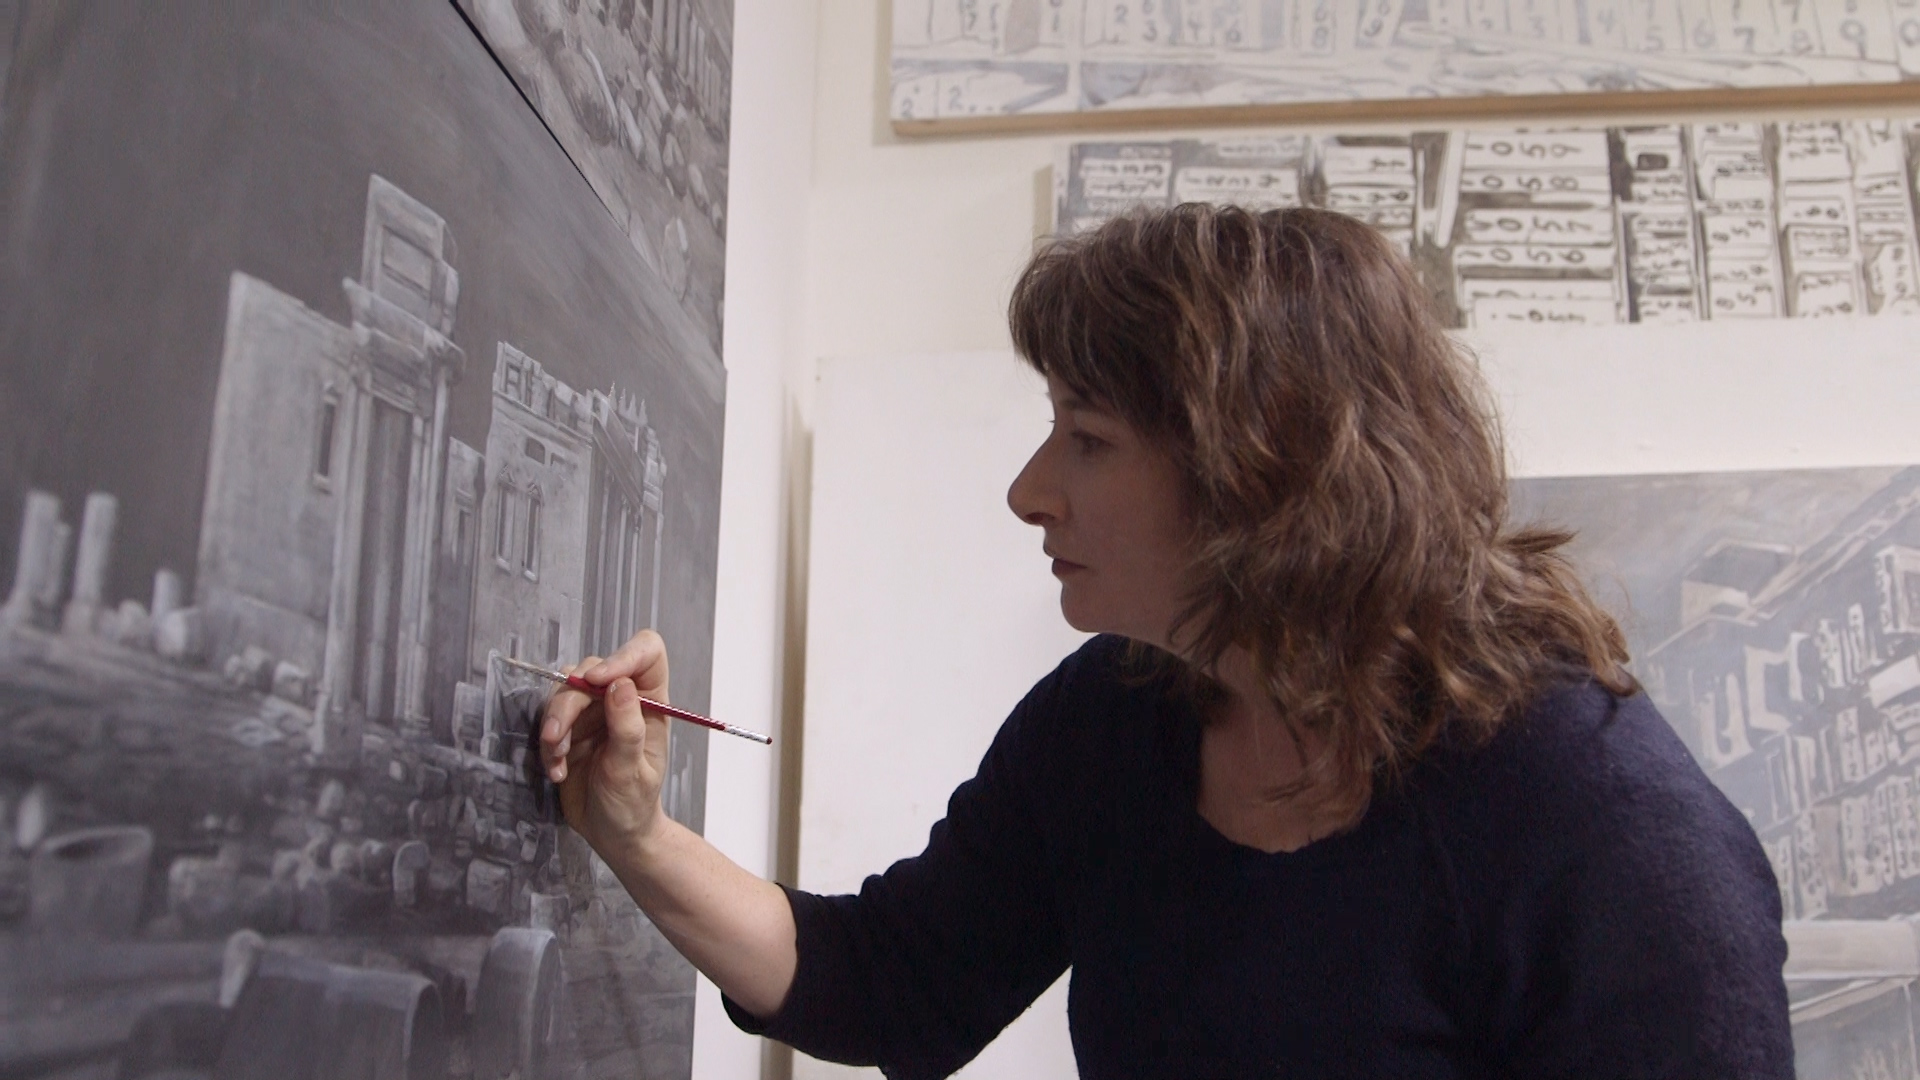 Ellen Harvey - Though she's been a successful visual artist for decades, Ellen Harvey remains obsessed with failure.Season 1, Episode 11